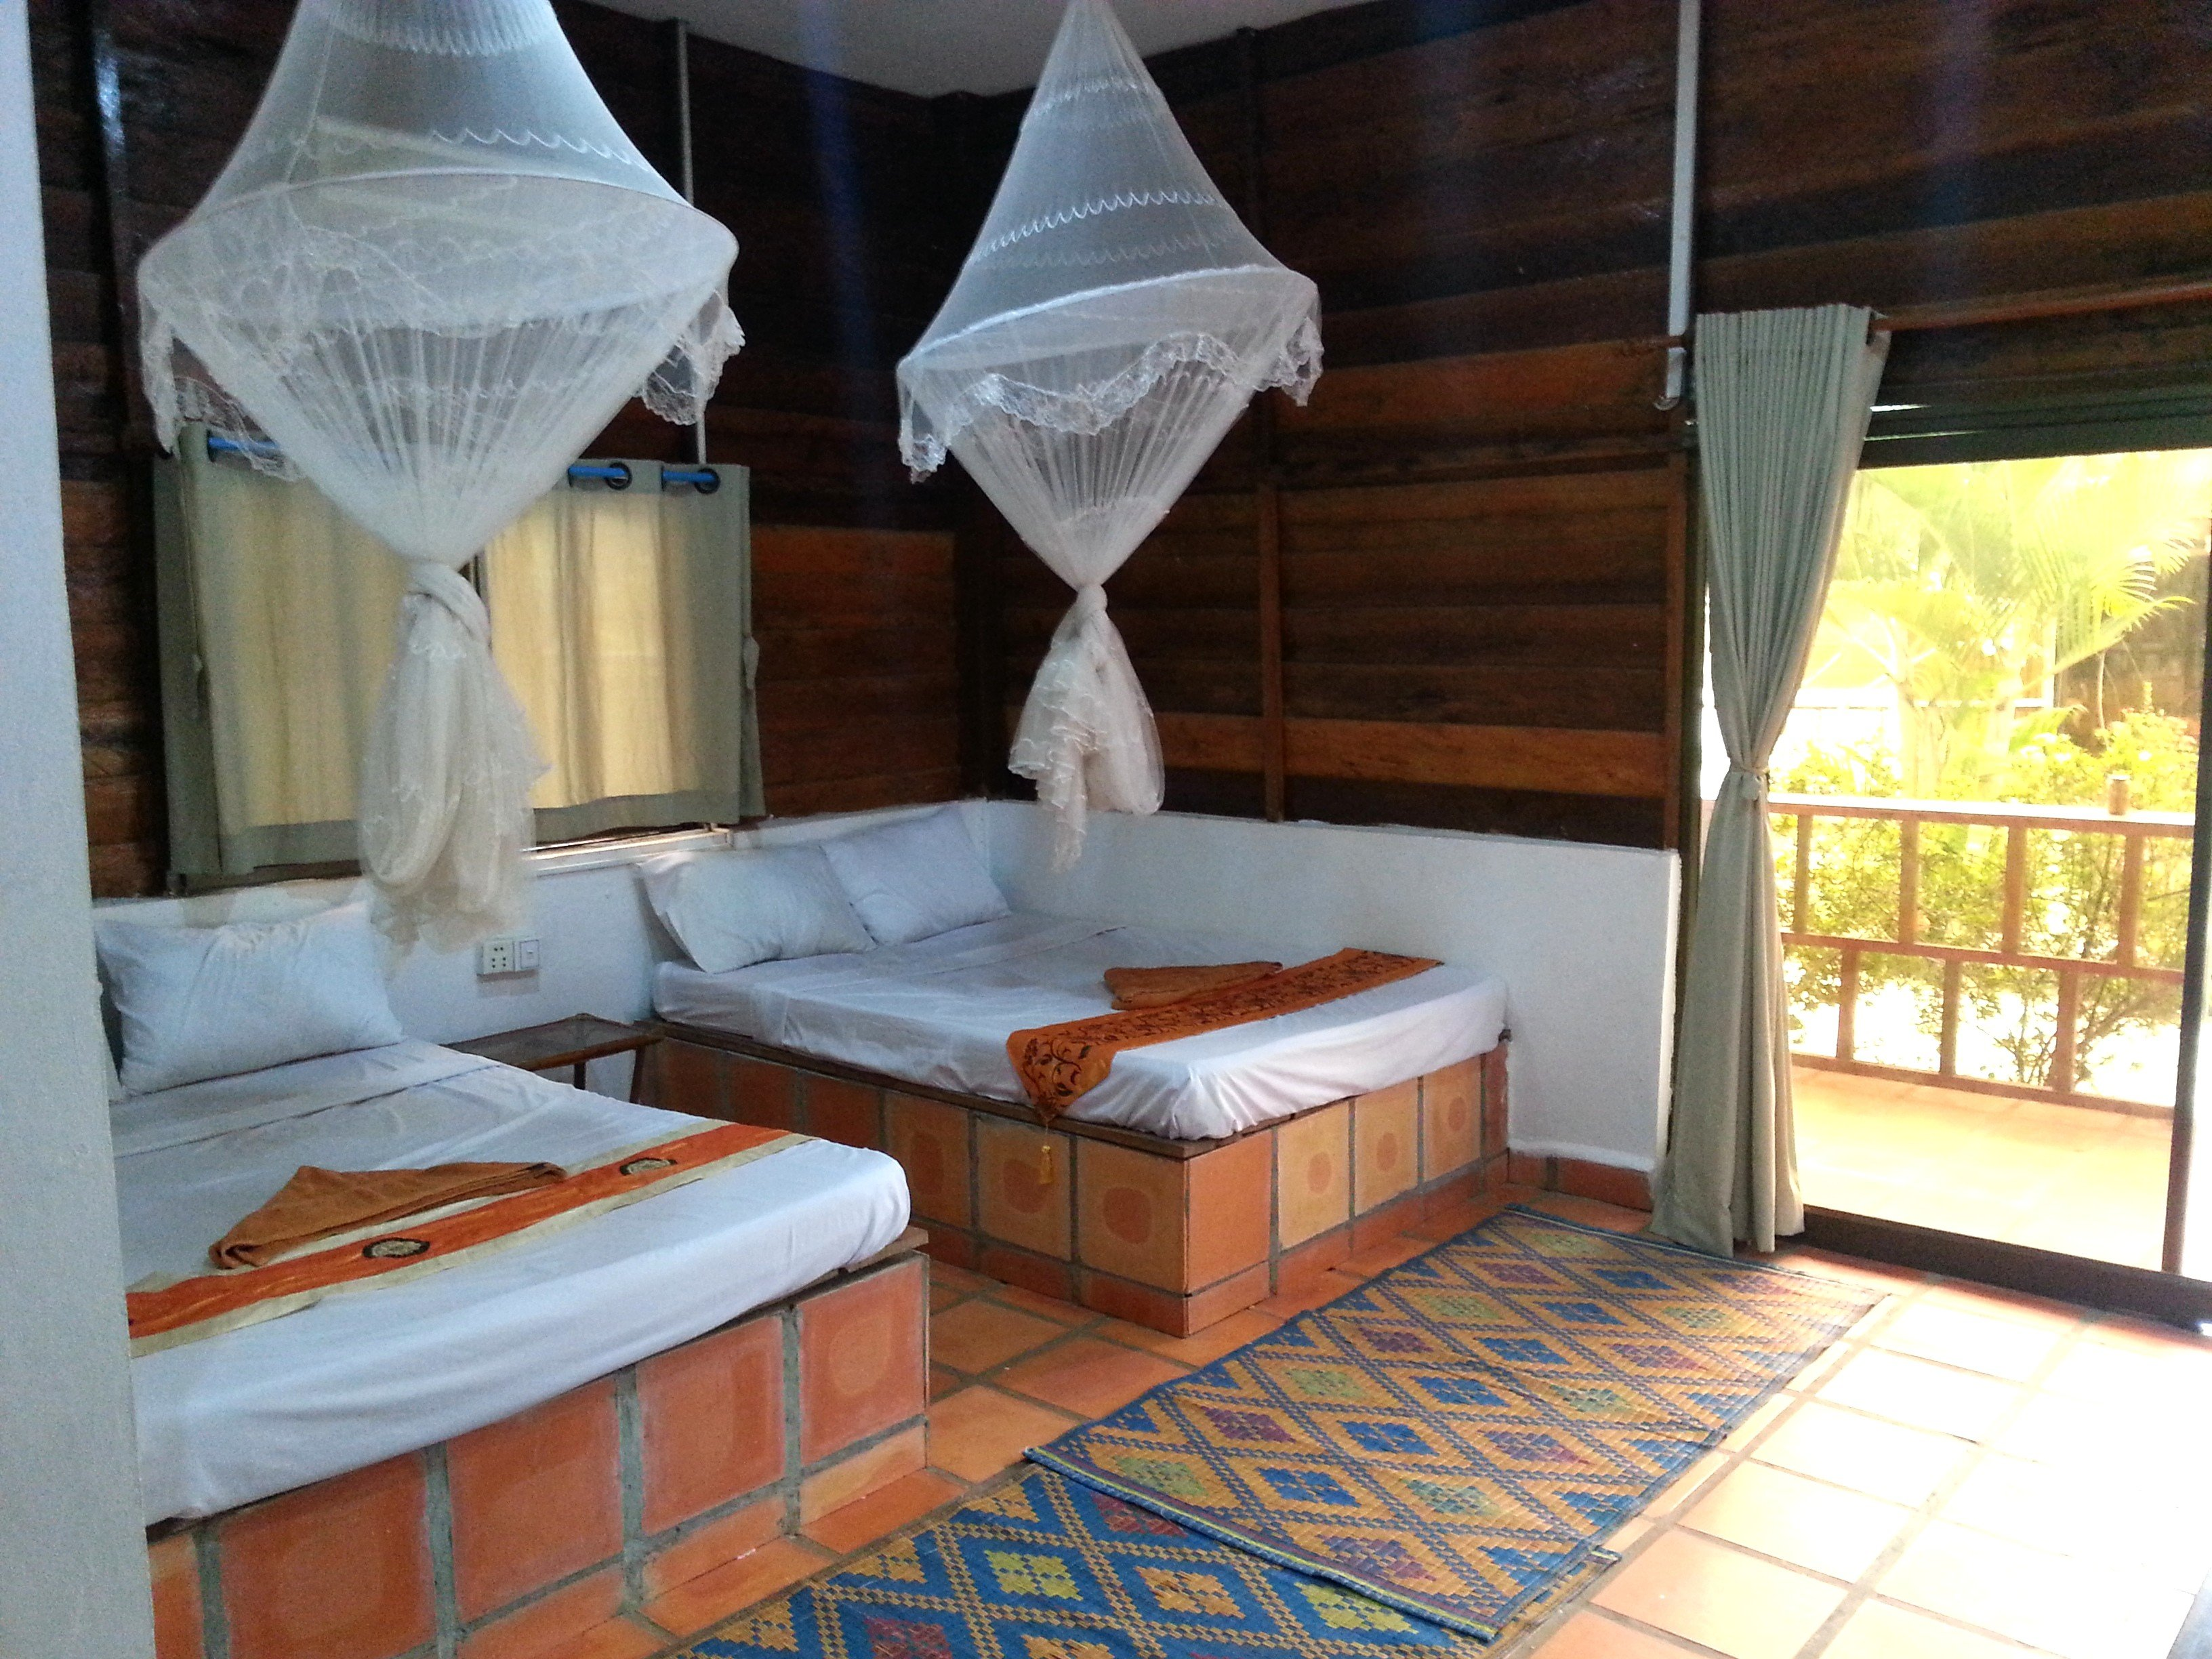 Beds at the Otres Lodge